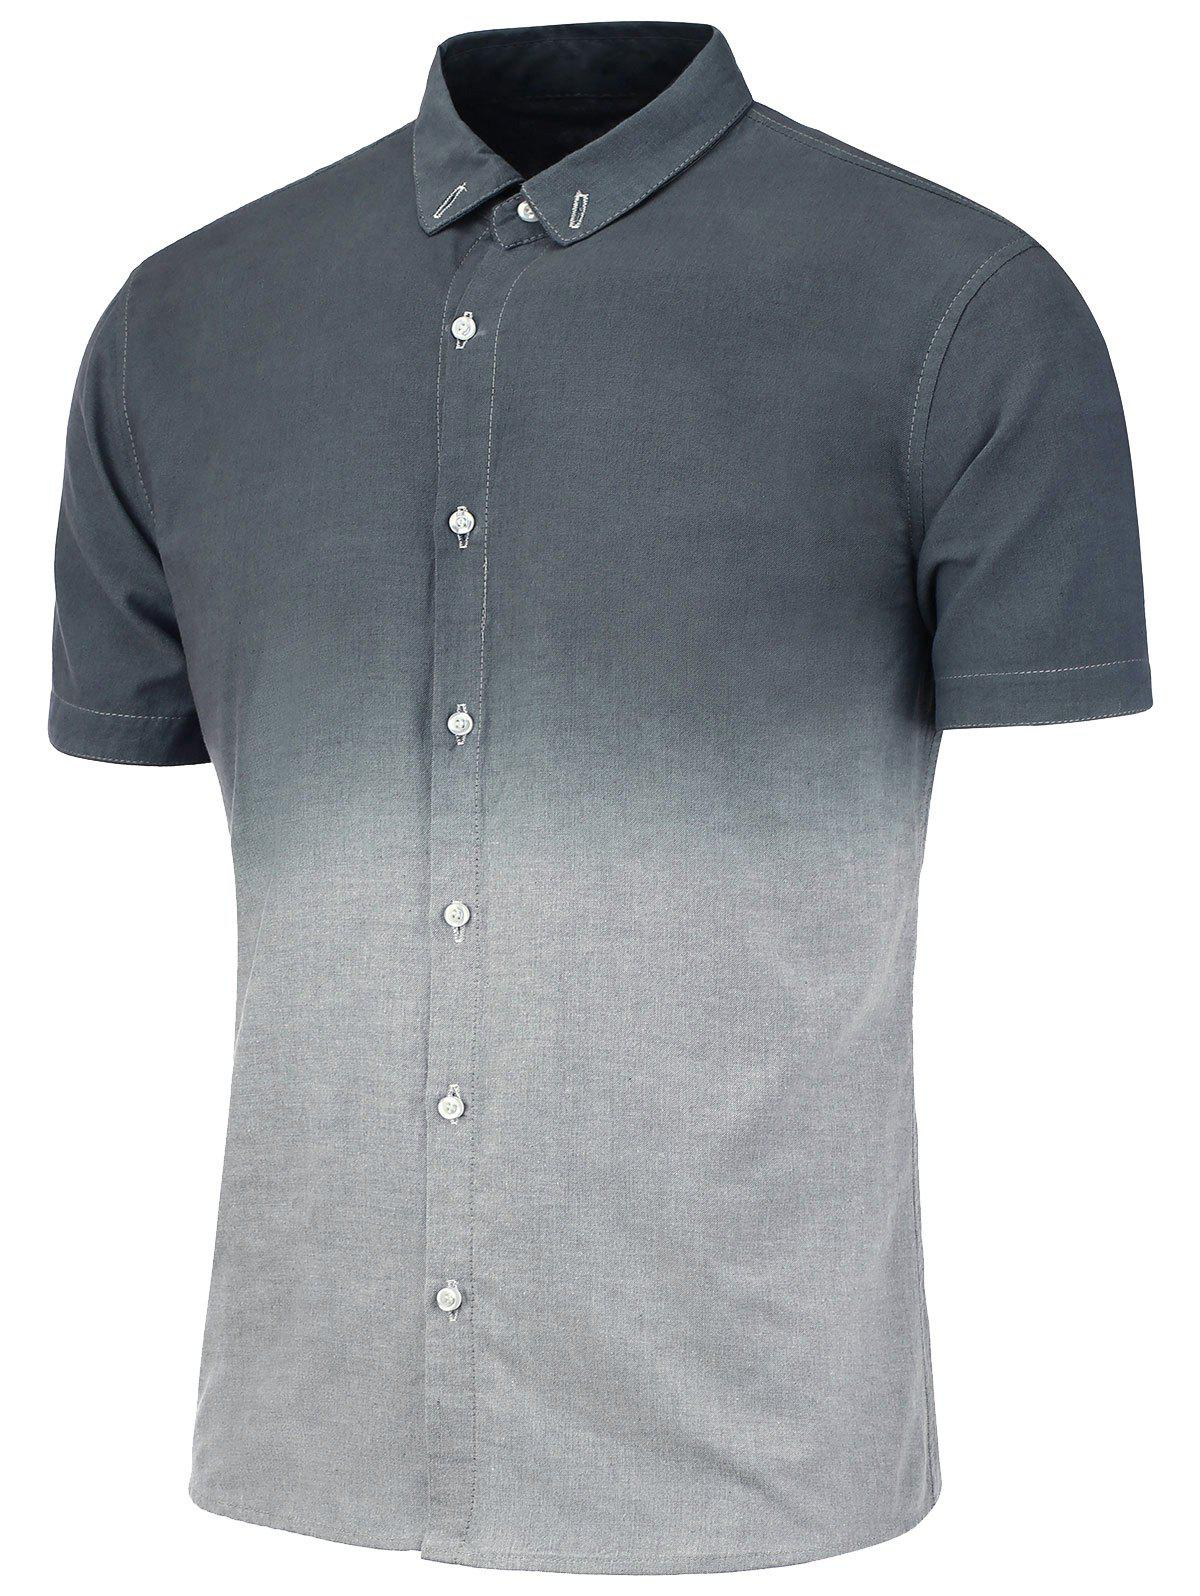 Dip Dye Button Down Short Sleeve Shirt - GRAY 3XL